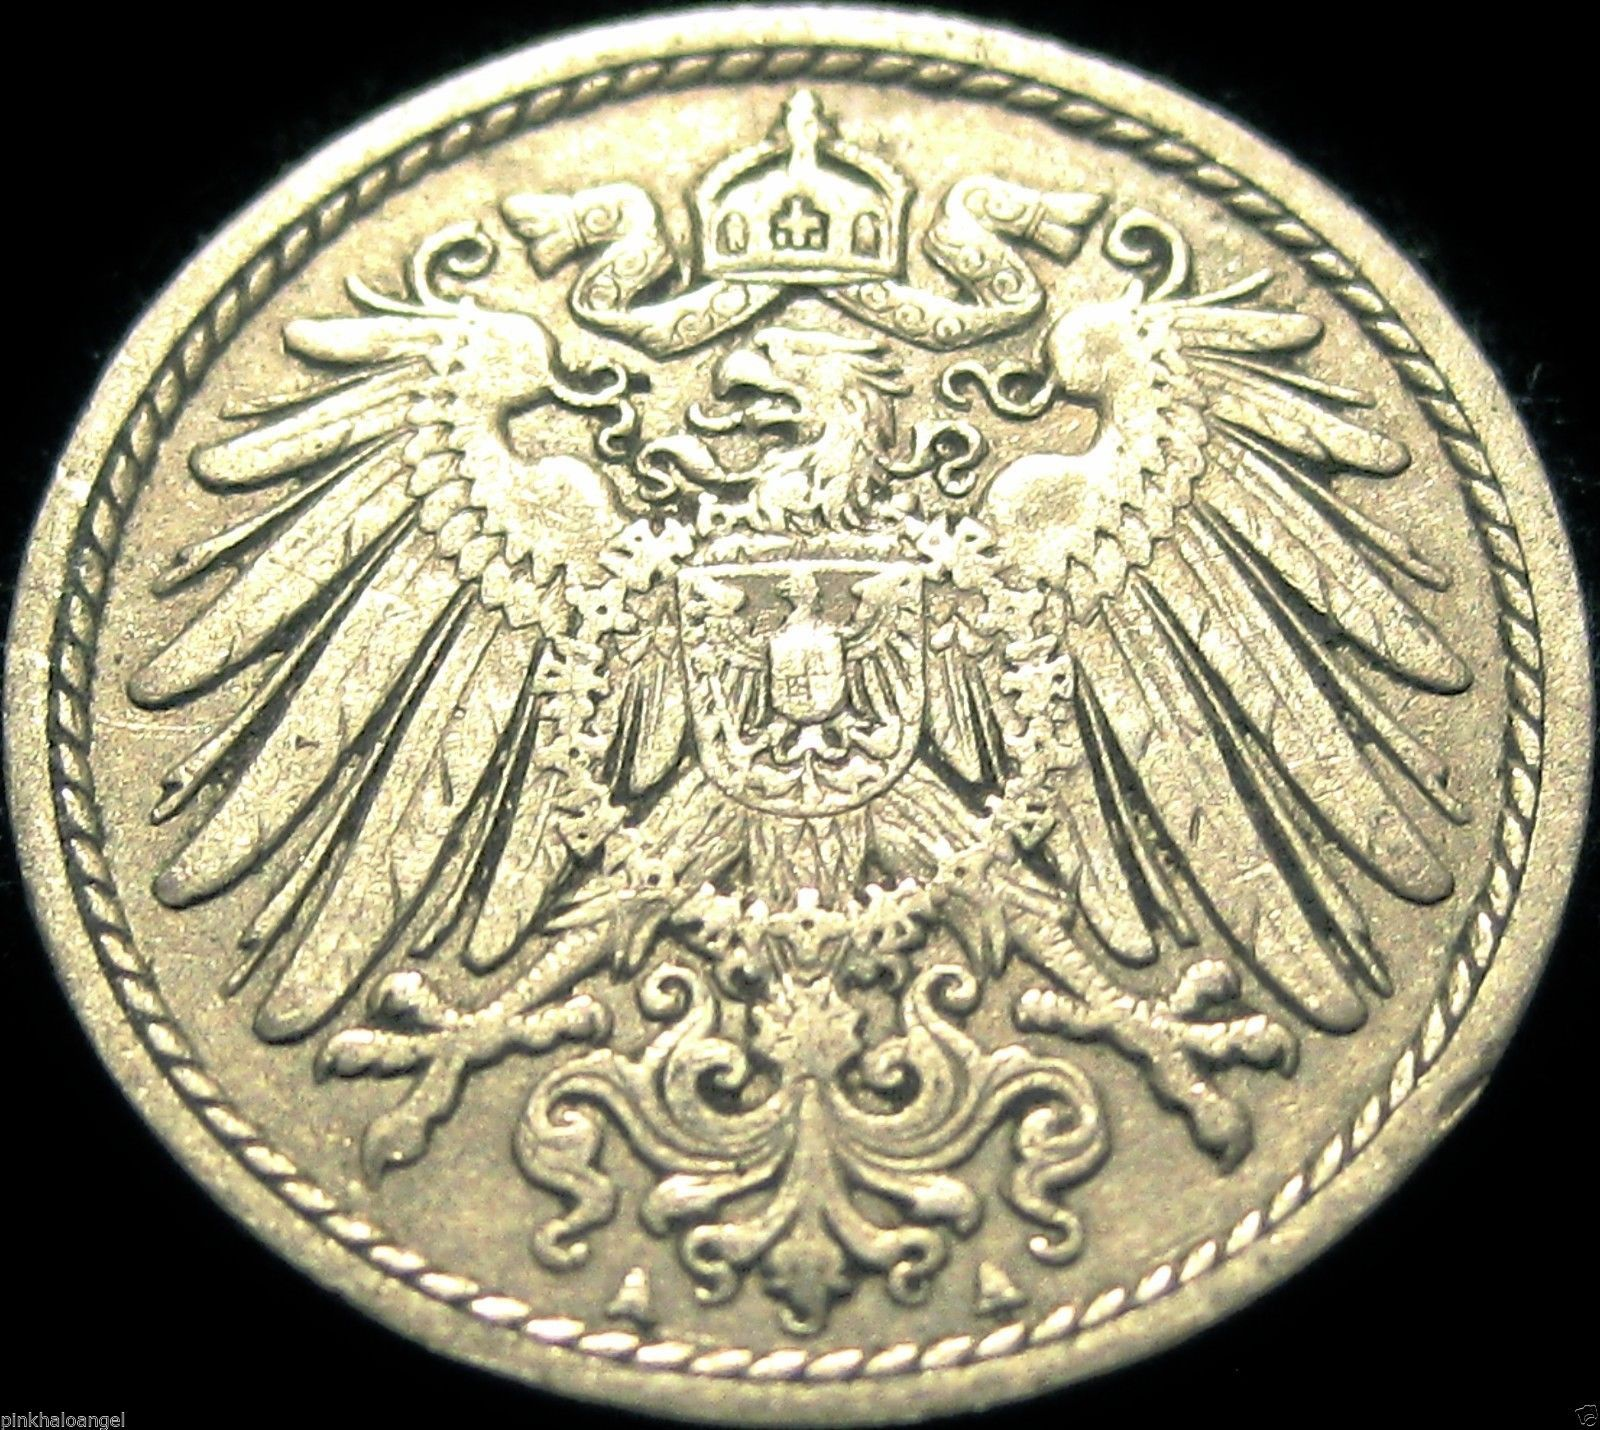 This coin is from Germany The German Empire KM11